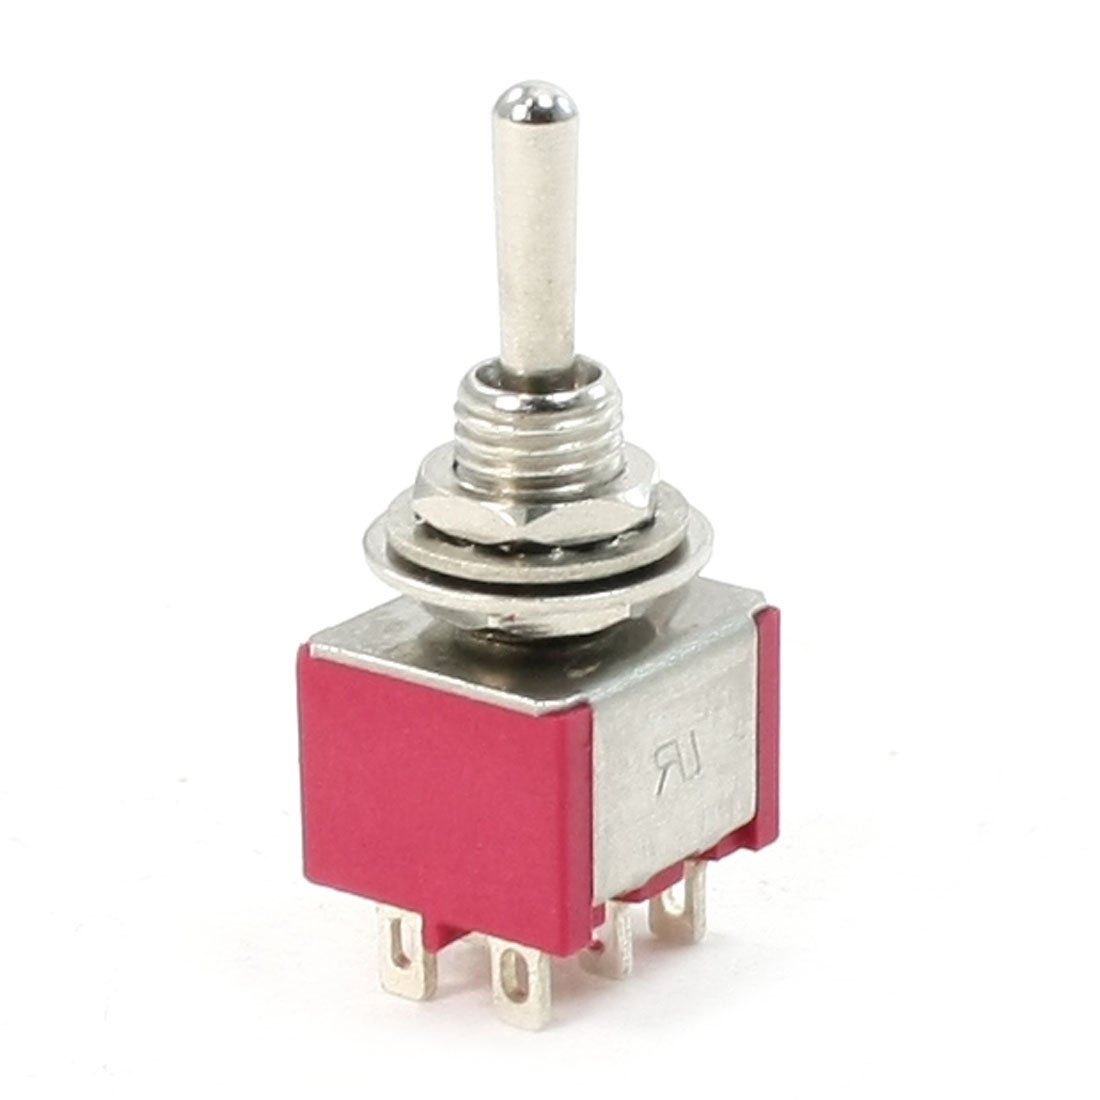 10 Pcs DPDT ON-OFF-ON Momentary Mini Toggle Switch AC 250V//2A 120V//5A